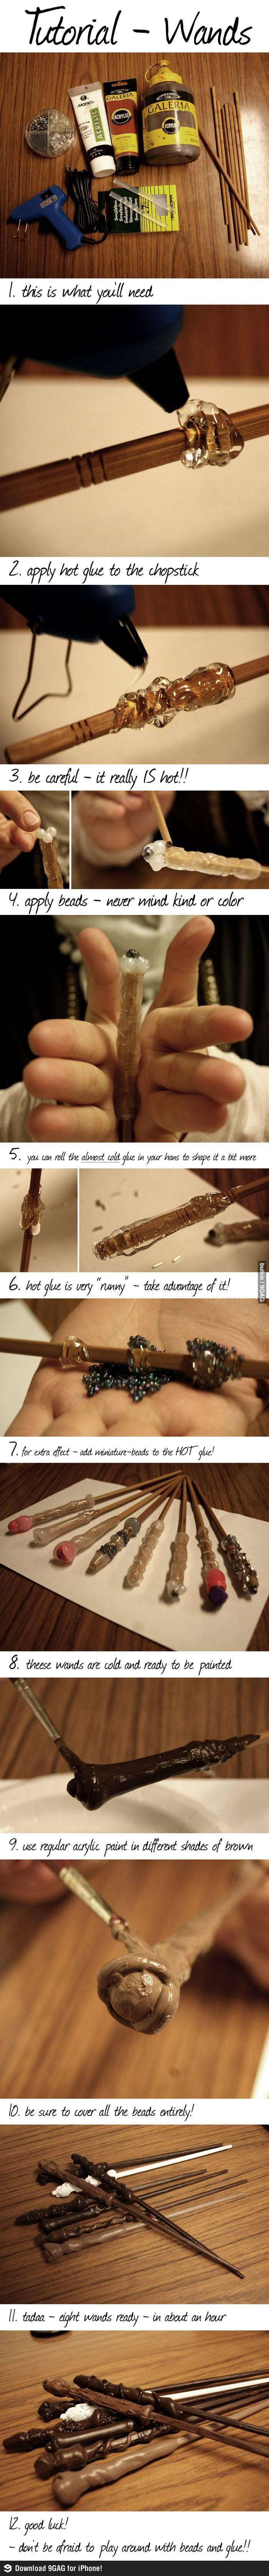 This is probably how Ollivanders does it. Oh my, where the f has this tutorial been my whole life?